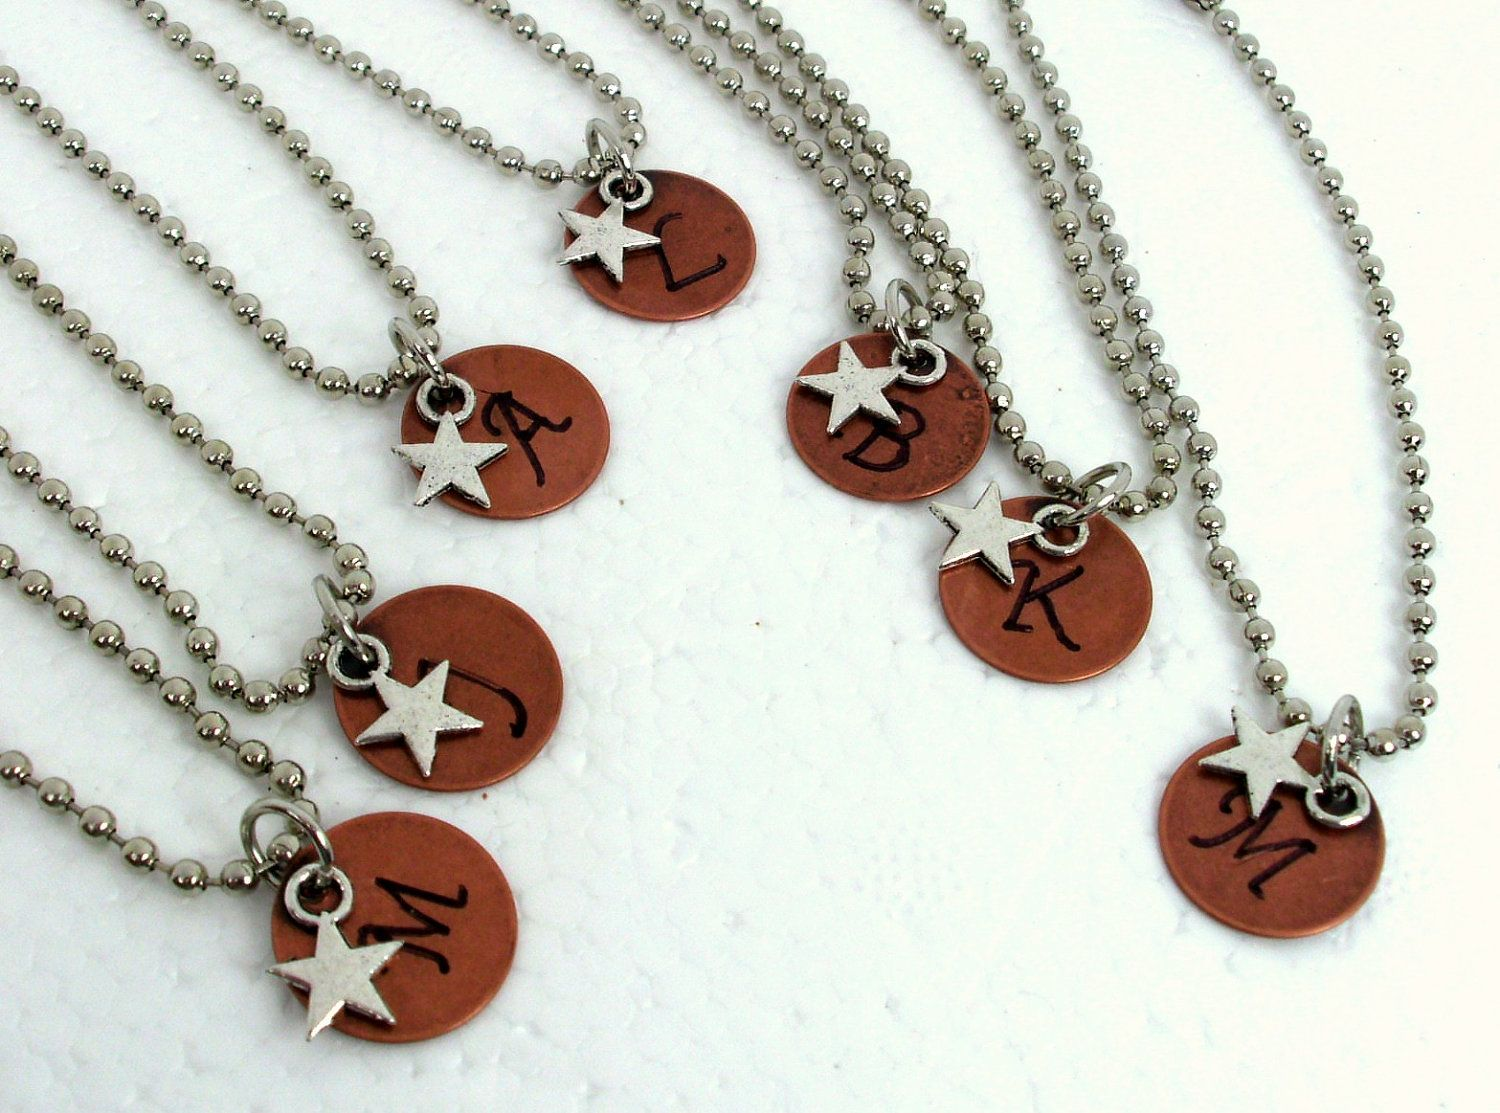 Rustic Wedding Jewelry, Bridesmaid Set, Personalized Copper Initial Bracelet or Necklace Set, Silver Star Necklace, Hand Stamped Jewelry. $90.00, via Etsy. @ my friends who are brides to be or country!